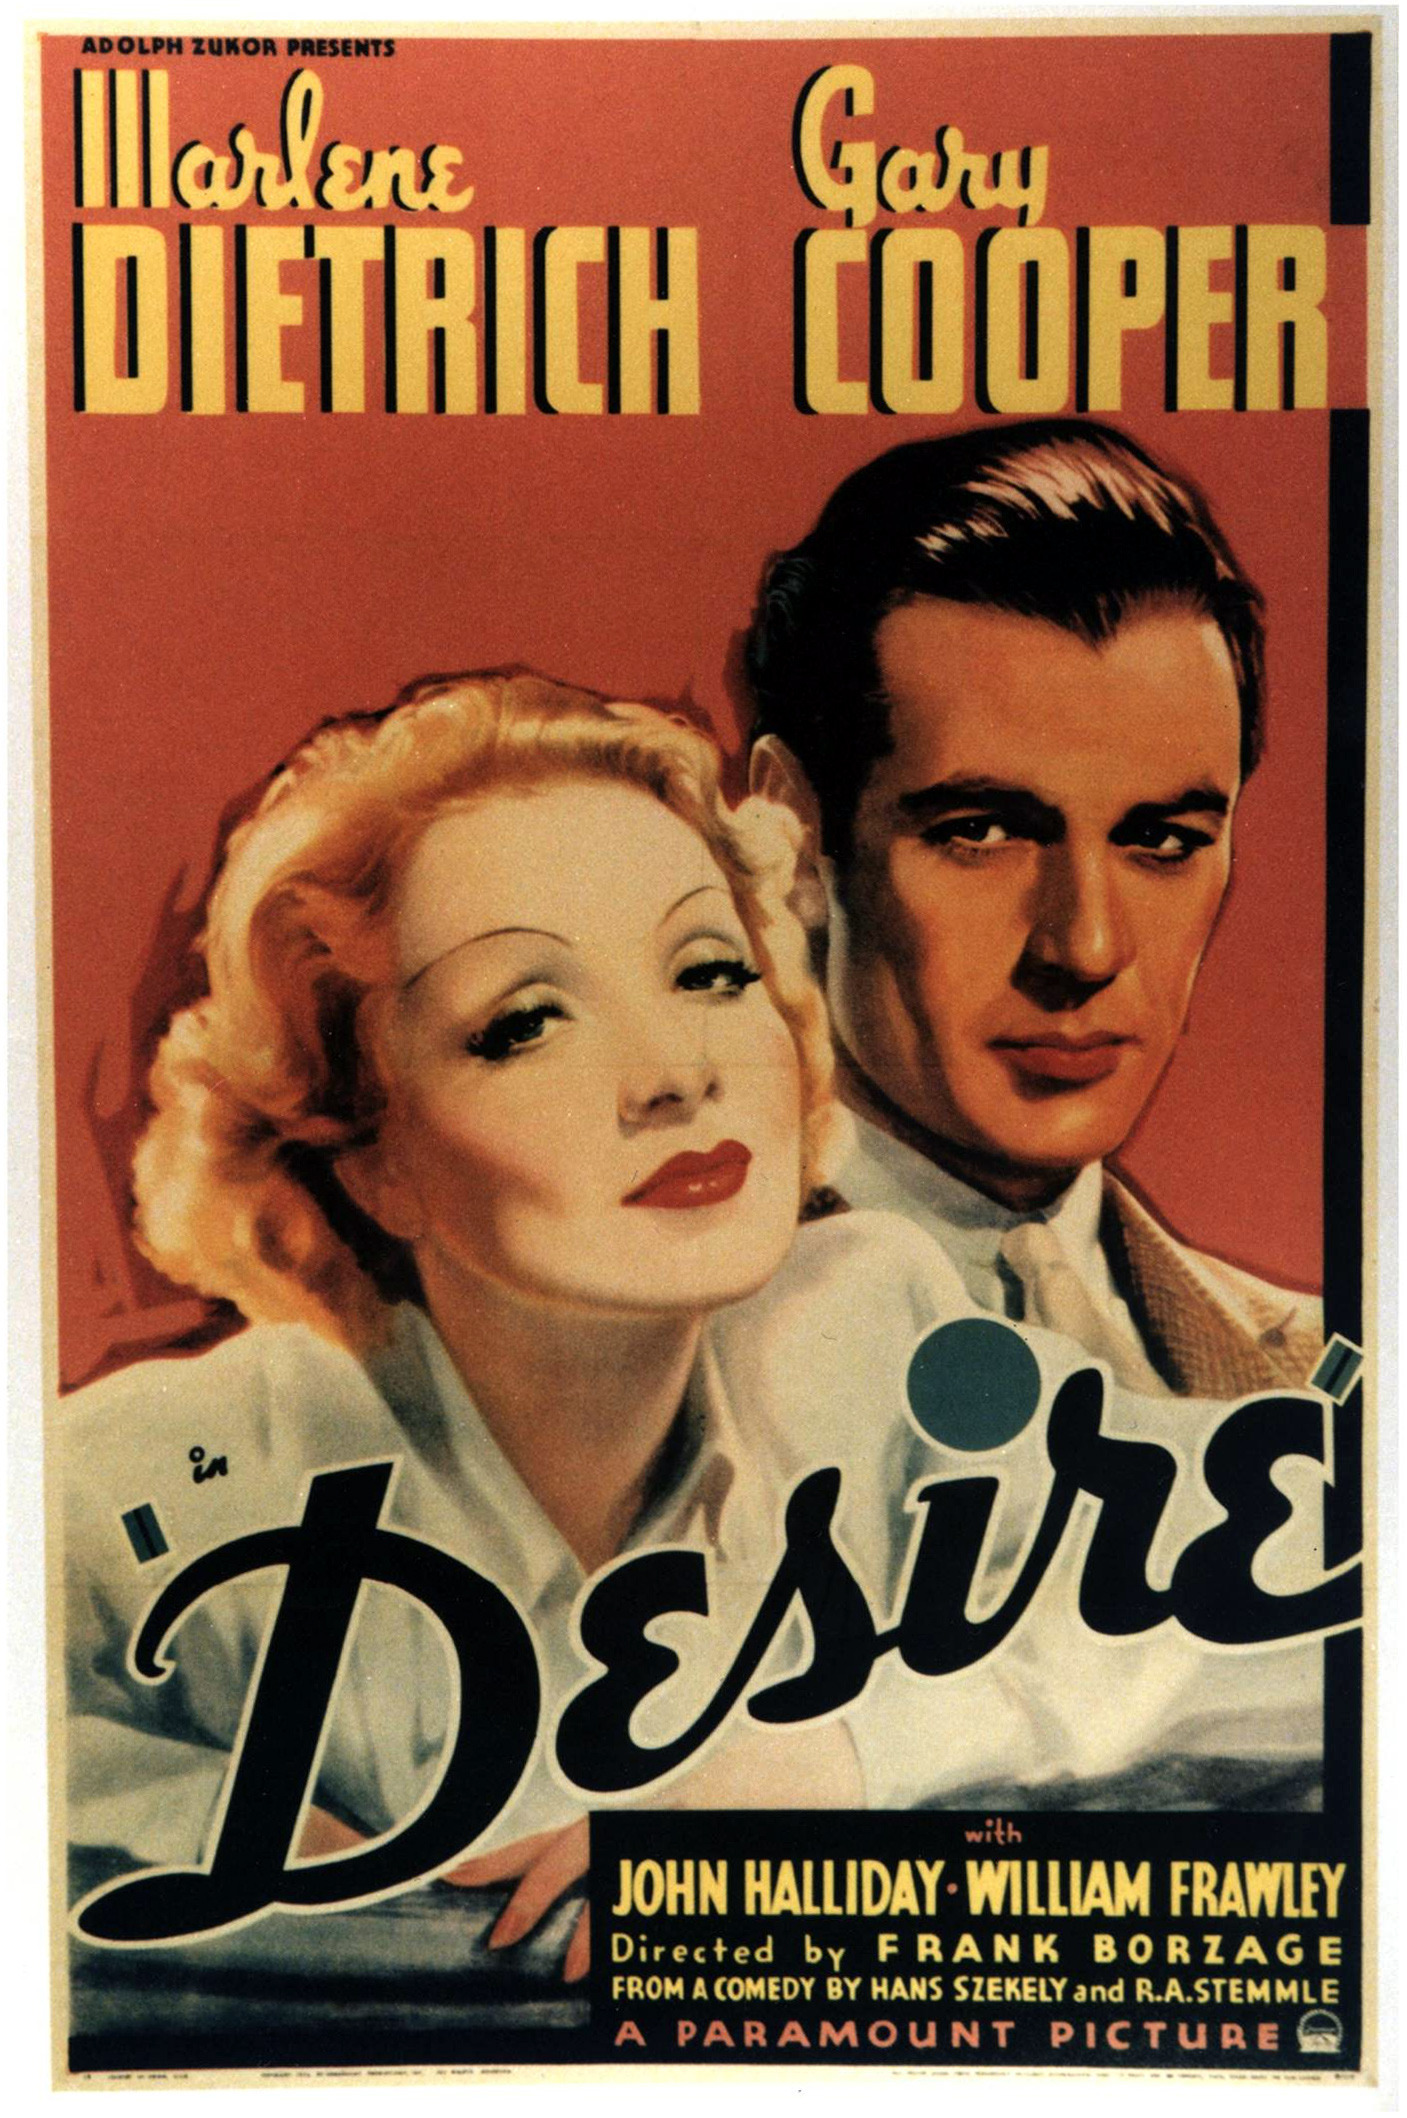 - Madeleine steals a string of pearls in Paris and uses US engineer Tom, who is driving on his vacation to Spain, to get the pearls out of France, but getting the pearls, back from him proves to be difficult without falling in love.Desire (1936) Directed by Frank Borzage. 95mins.Marlene Dietrich - Madeleine de BeaupreGary Cooper - Tom BradleyAlso starring John Halliday, William Frawley, Akim Tamiroff and Alan Mowbray.Romantic drama, a remake of a 1933 German film.Tagline - Love was her precious loot!19361 h 29 min